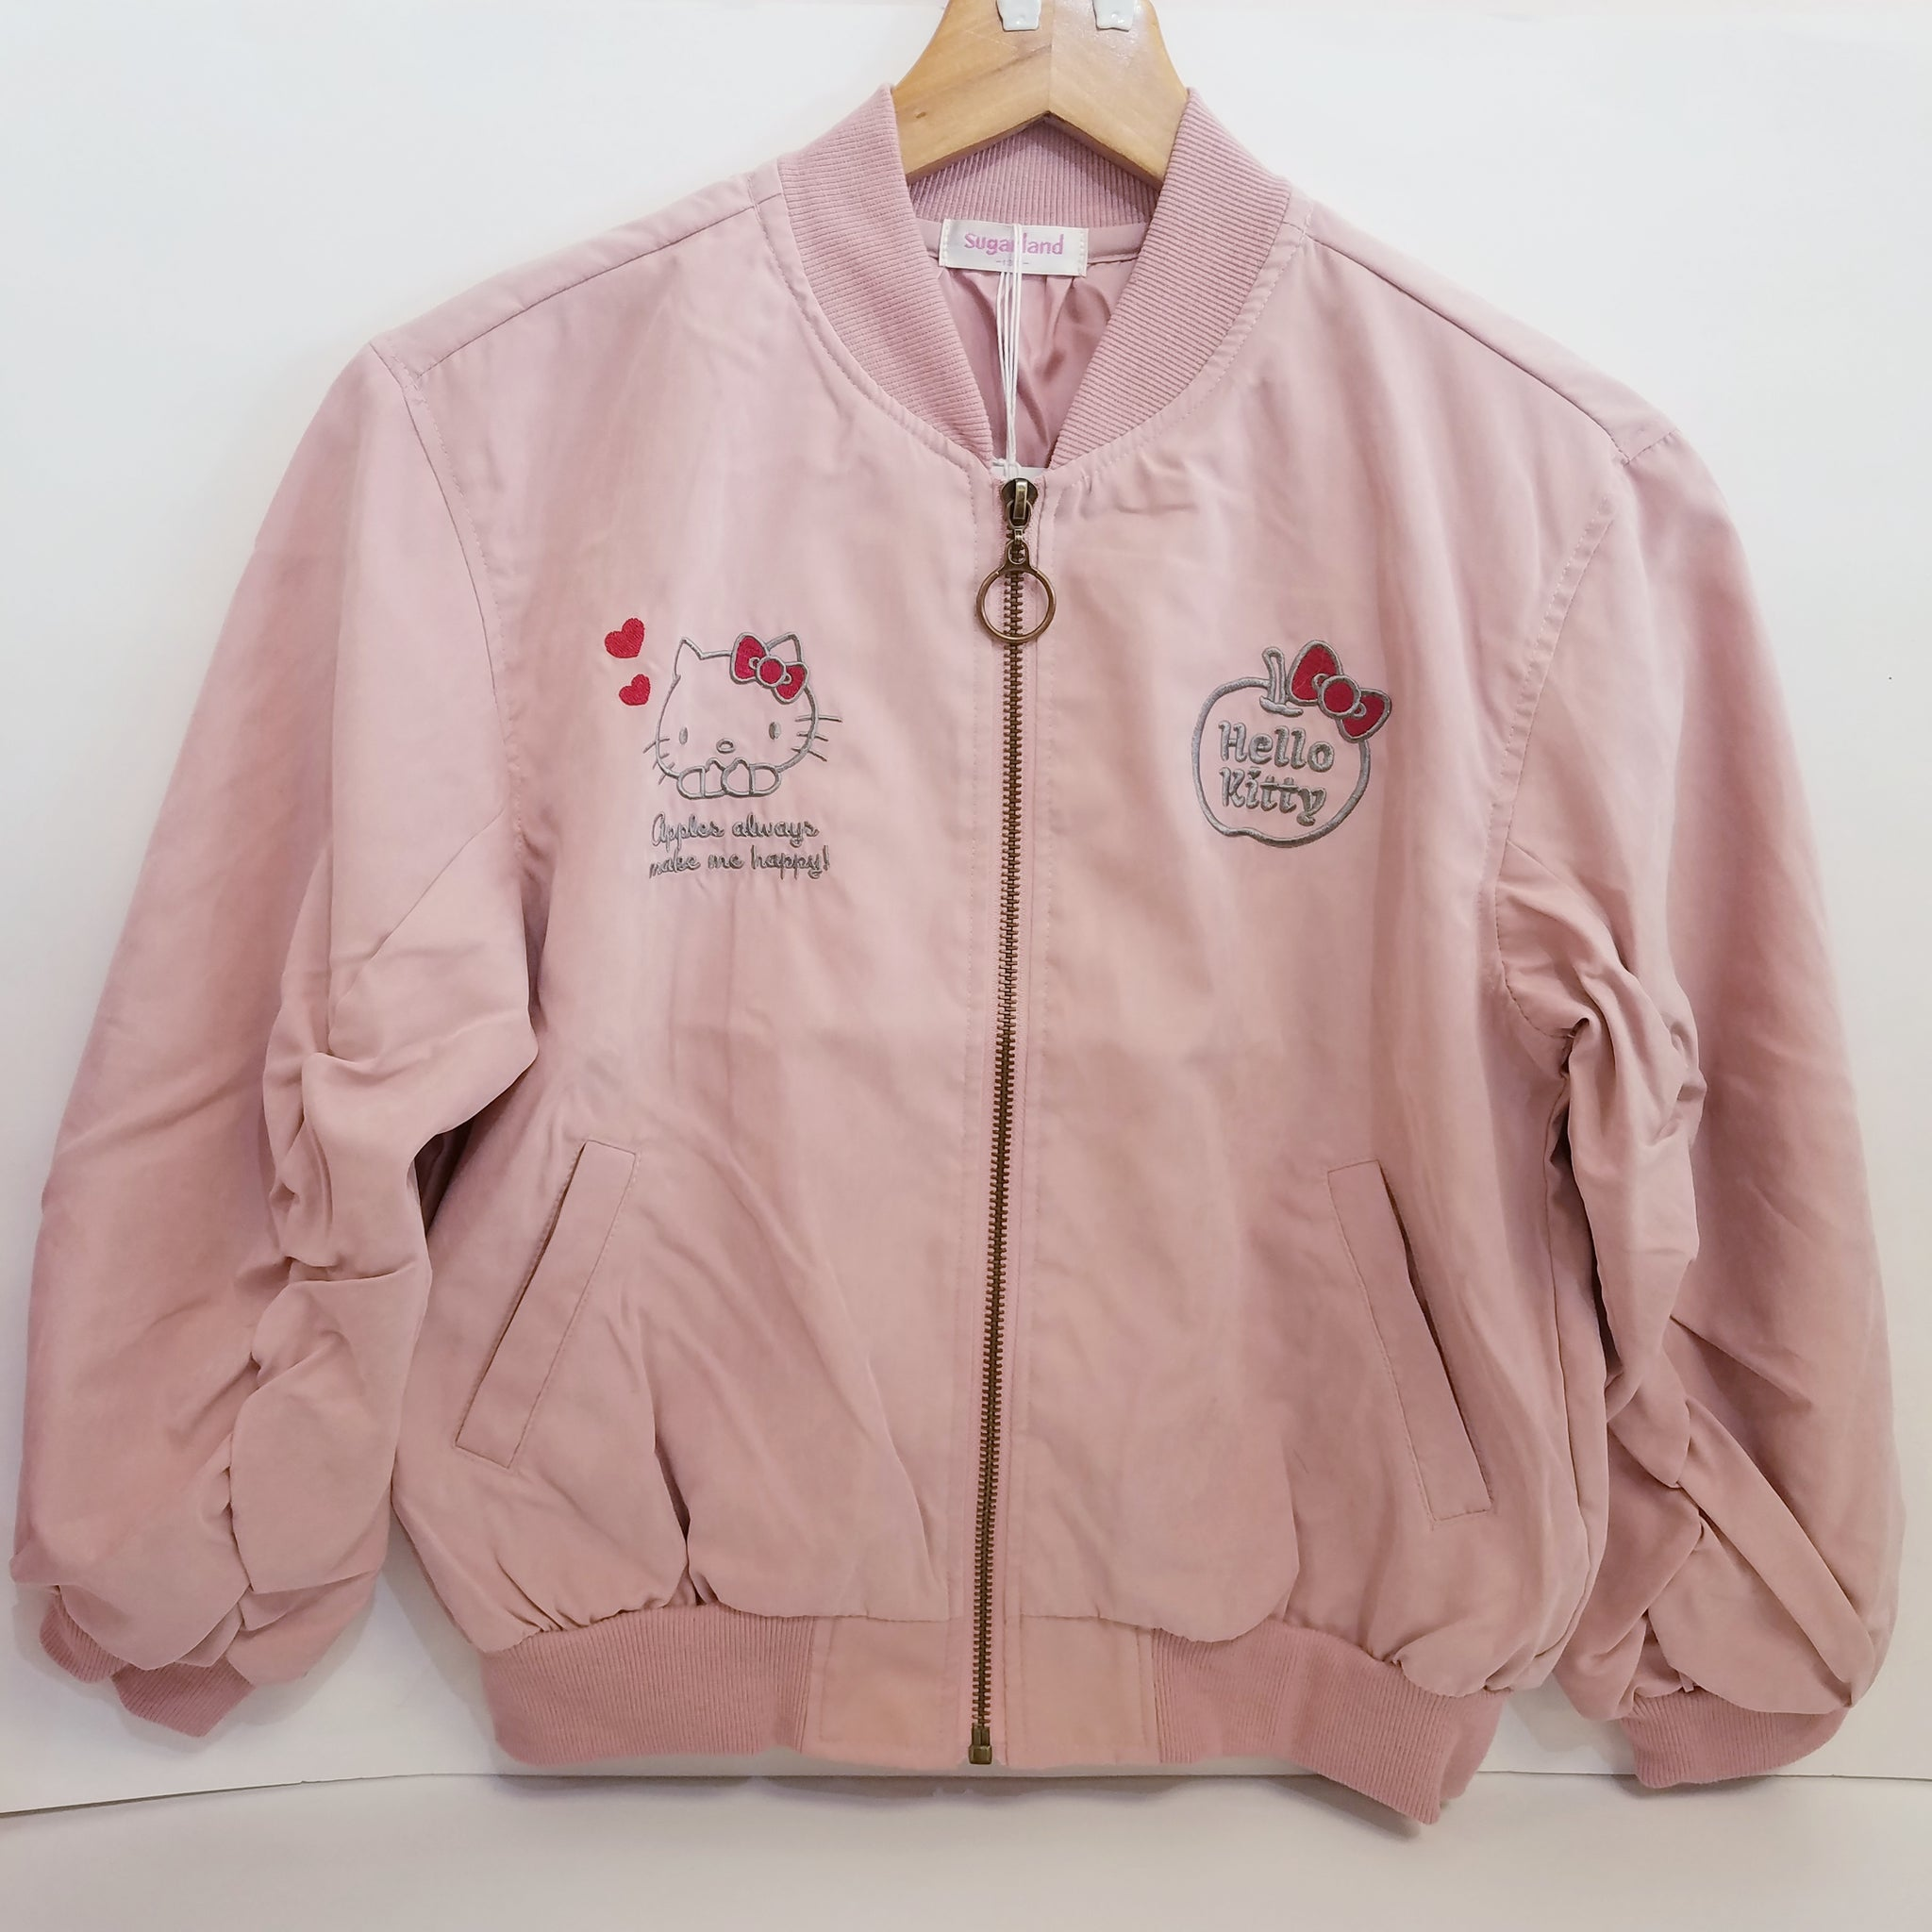 Hello Kitty Pink Girls Bomber Jacket by Sugarland